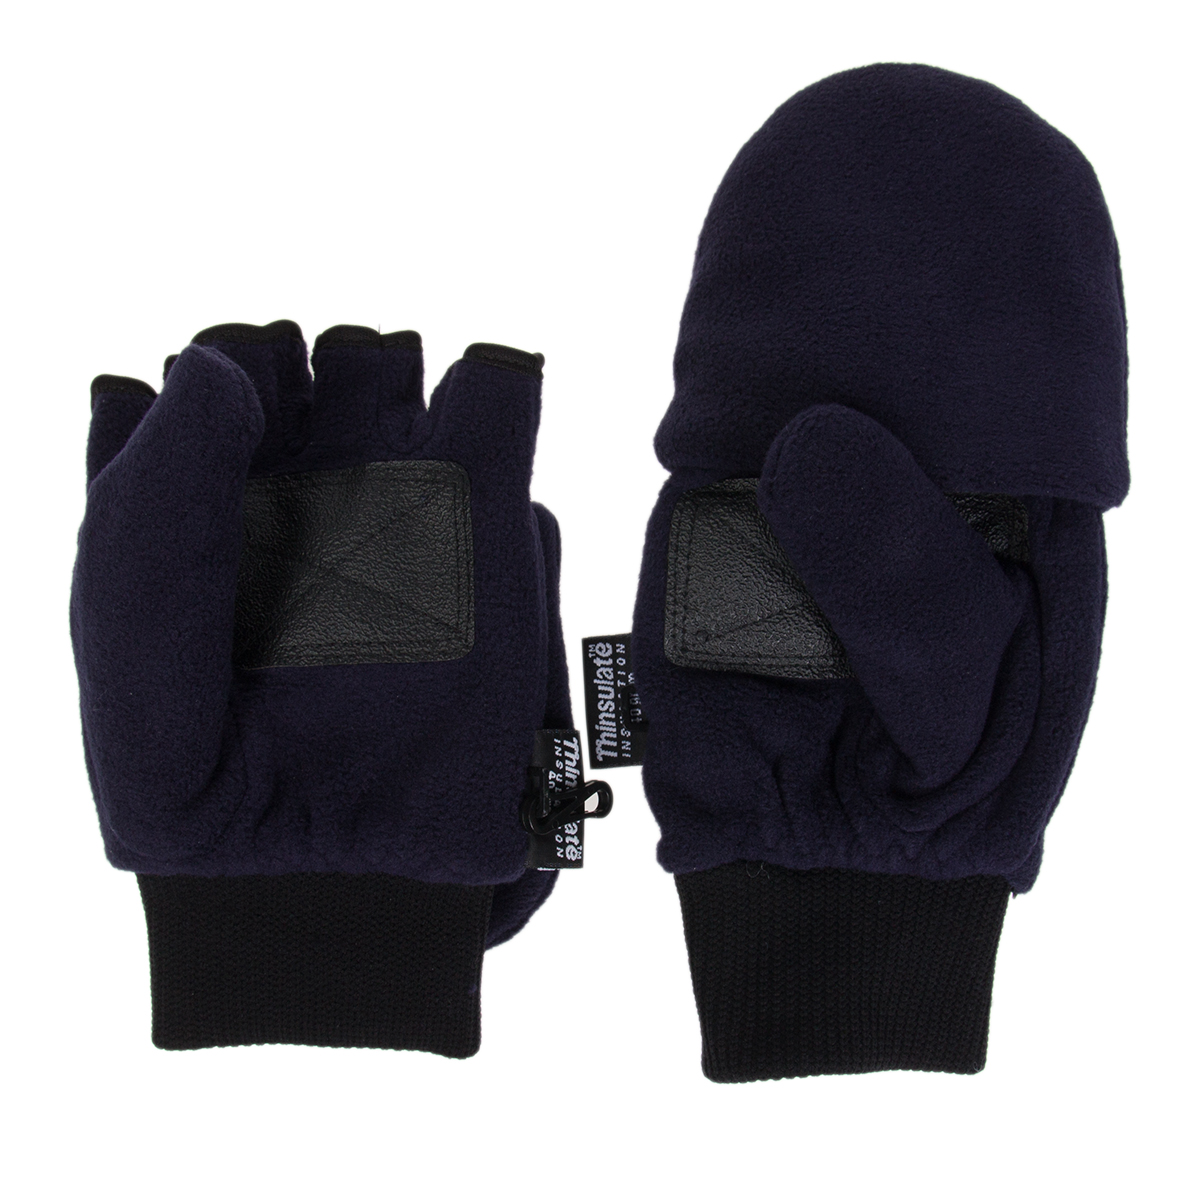 Snow Ski Gloves Thinsulate Lined Waterproof Kids Winter Mittens. from $ 13 99 Prime. out of 5 stars Men's Wool Glove Mitten Fingerless Crochet Convertible Knitted Gloves $ 15 99 Prime. out of 5 stars Quietwear. Men's Split Leather Thinsulate Mitten. from $ 7 13 Add-on Item. out of 5 stars Hot Headz.